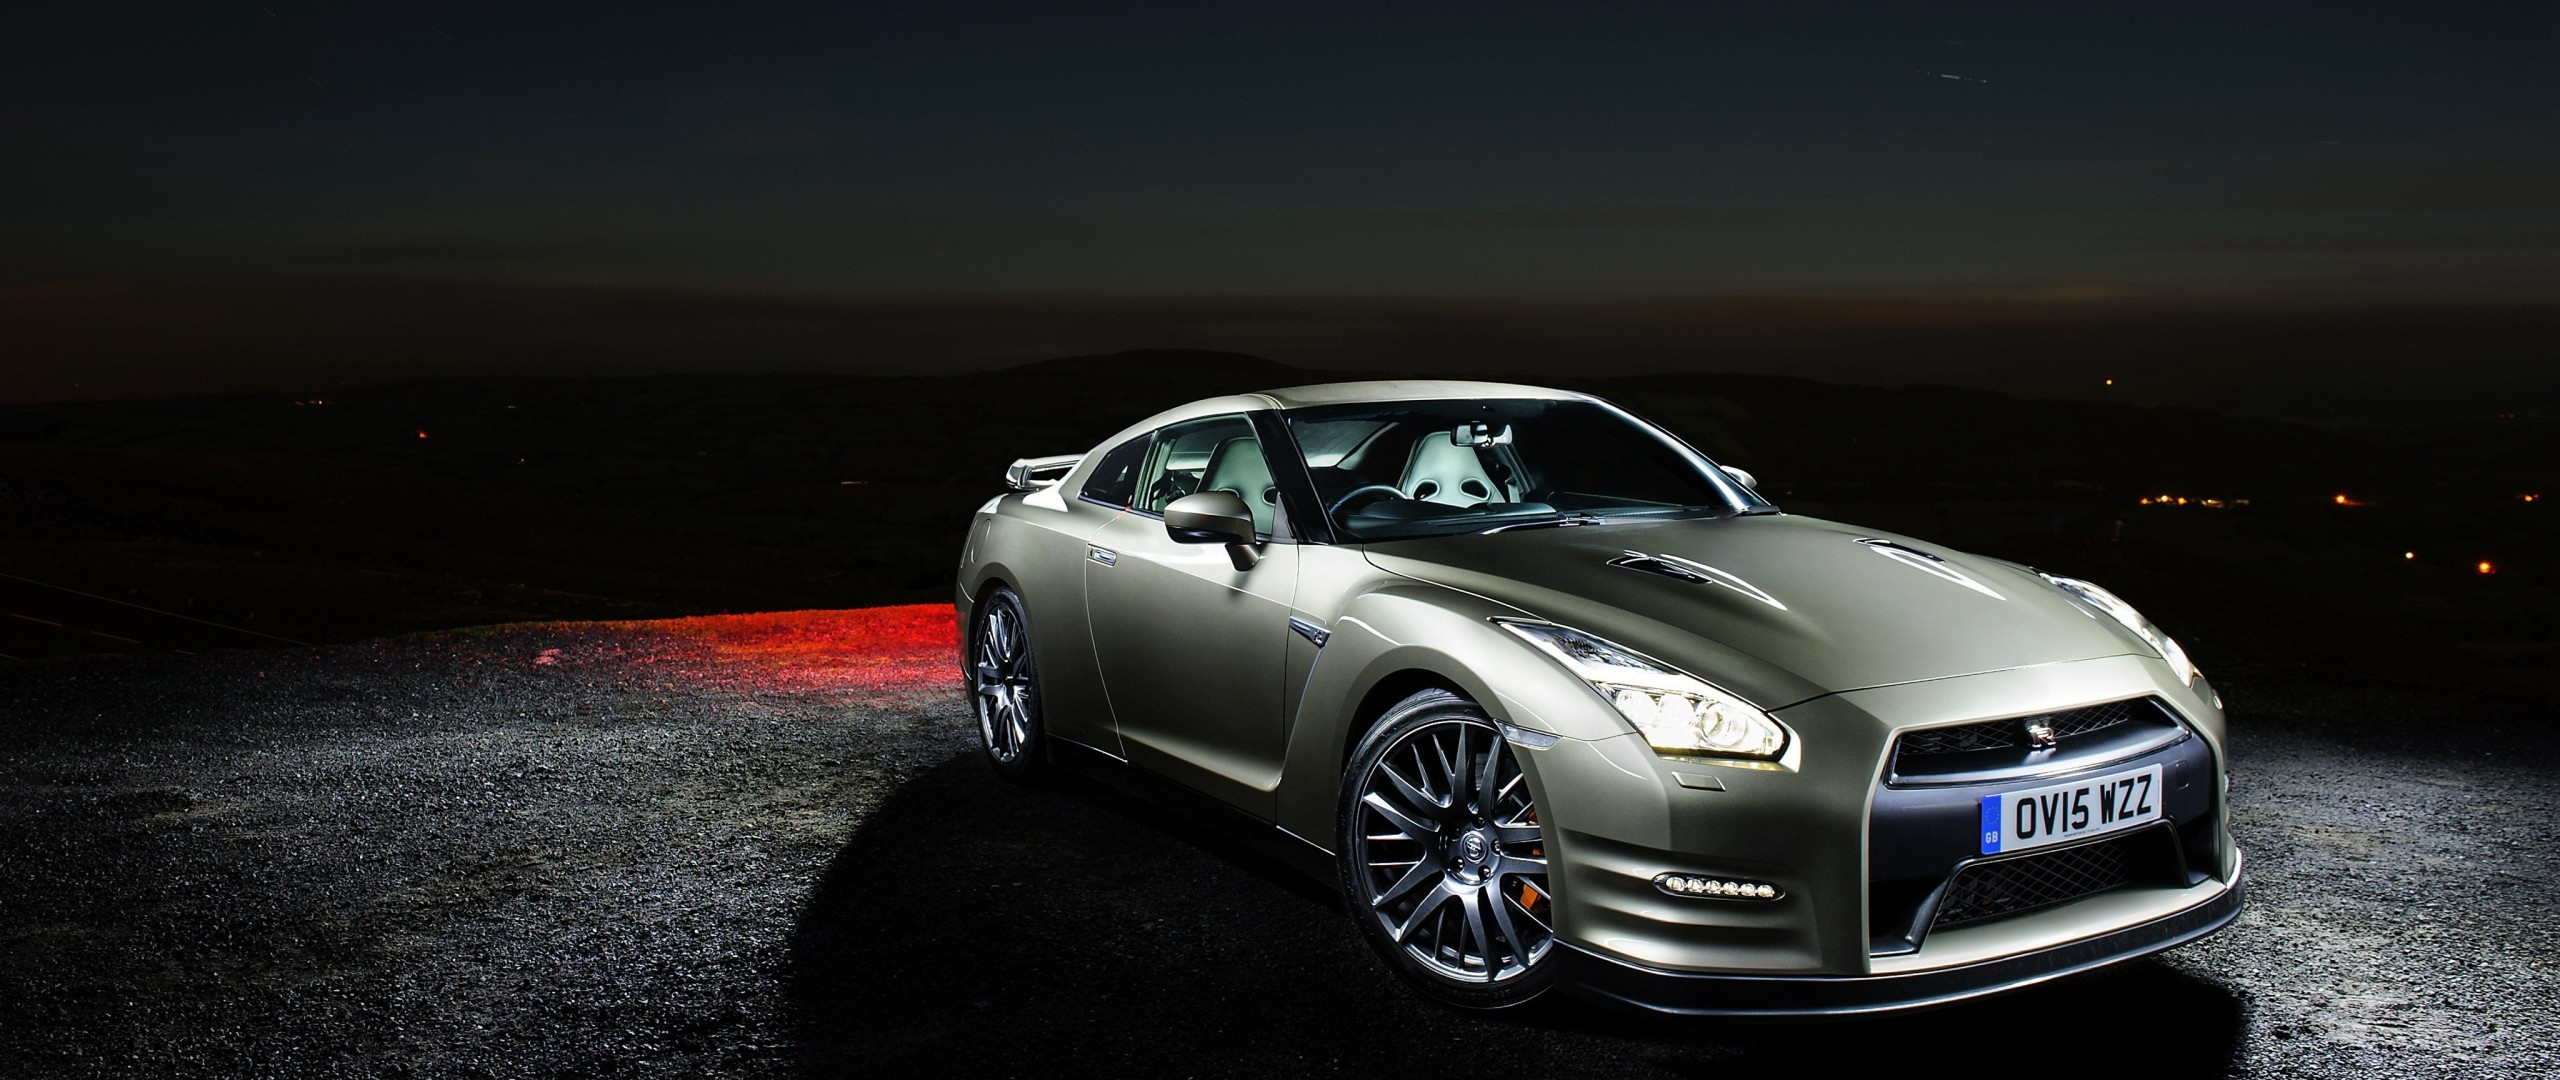 Preview wallpaper nissan, gt-r, side view, night 2560×1080